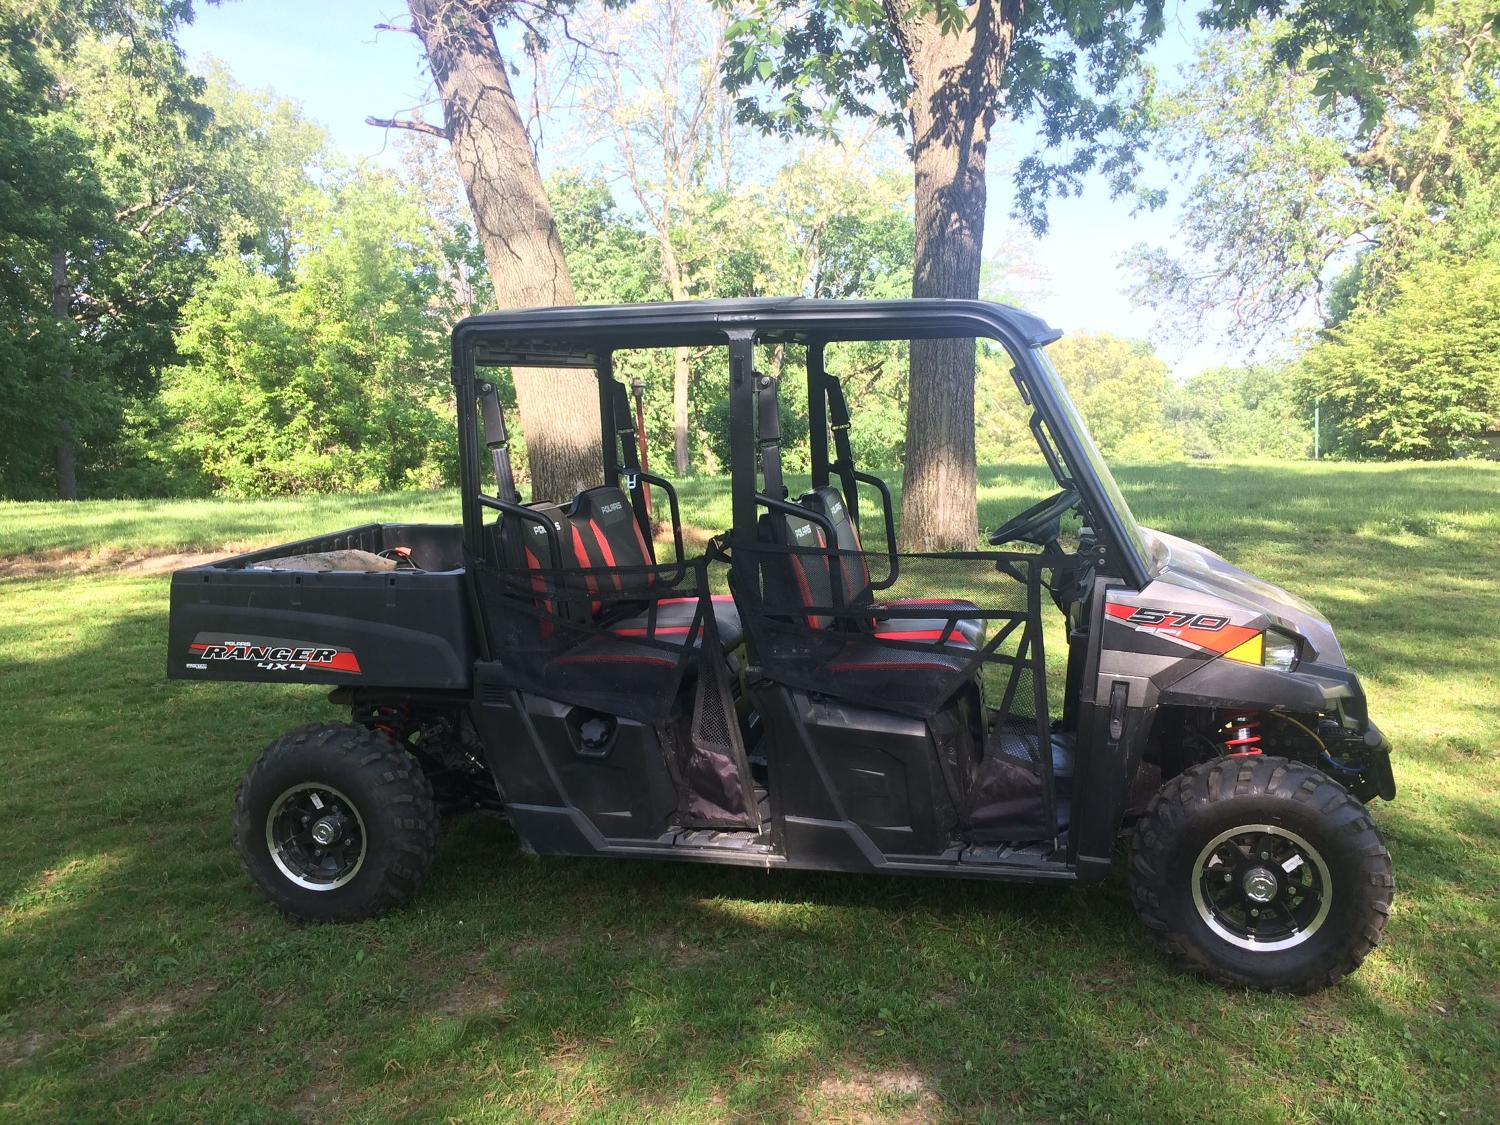 Polaris Side By Side >> Price Lowered Polaris Side By Side Utv